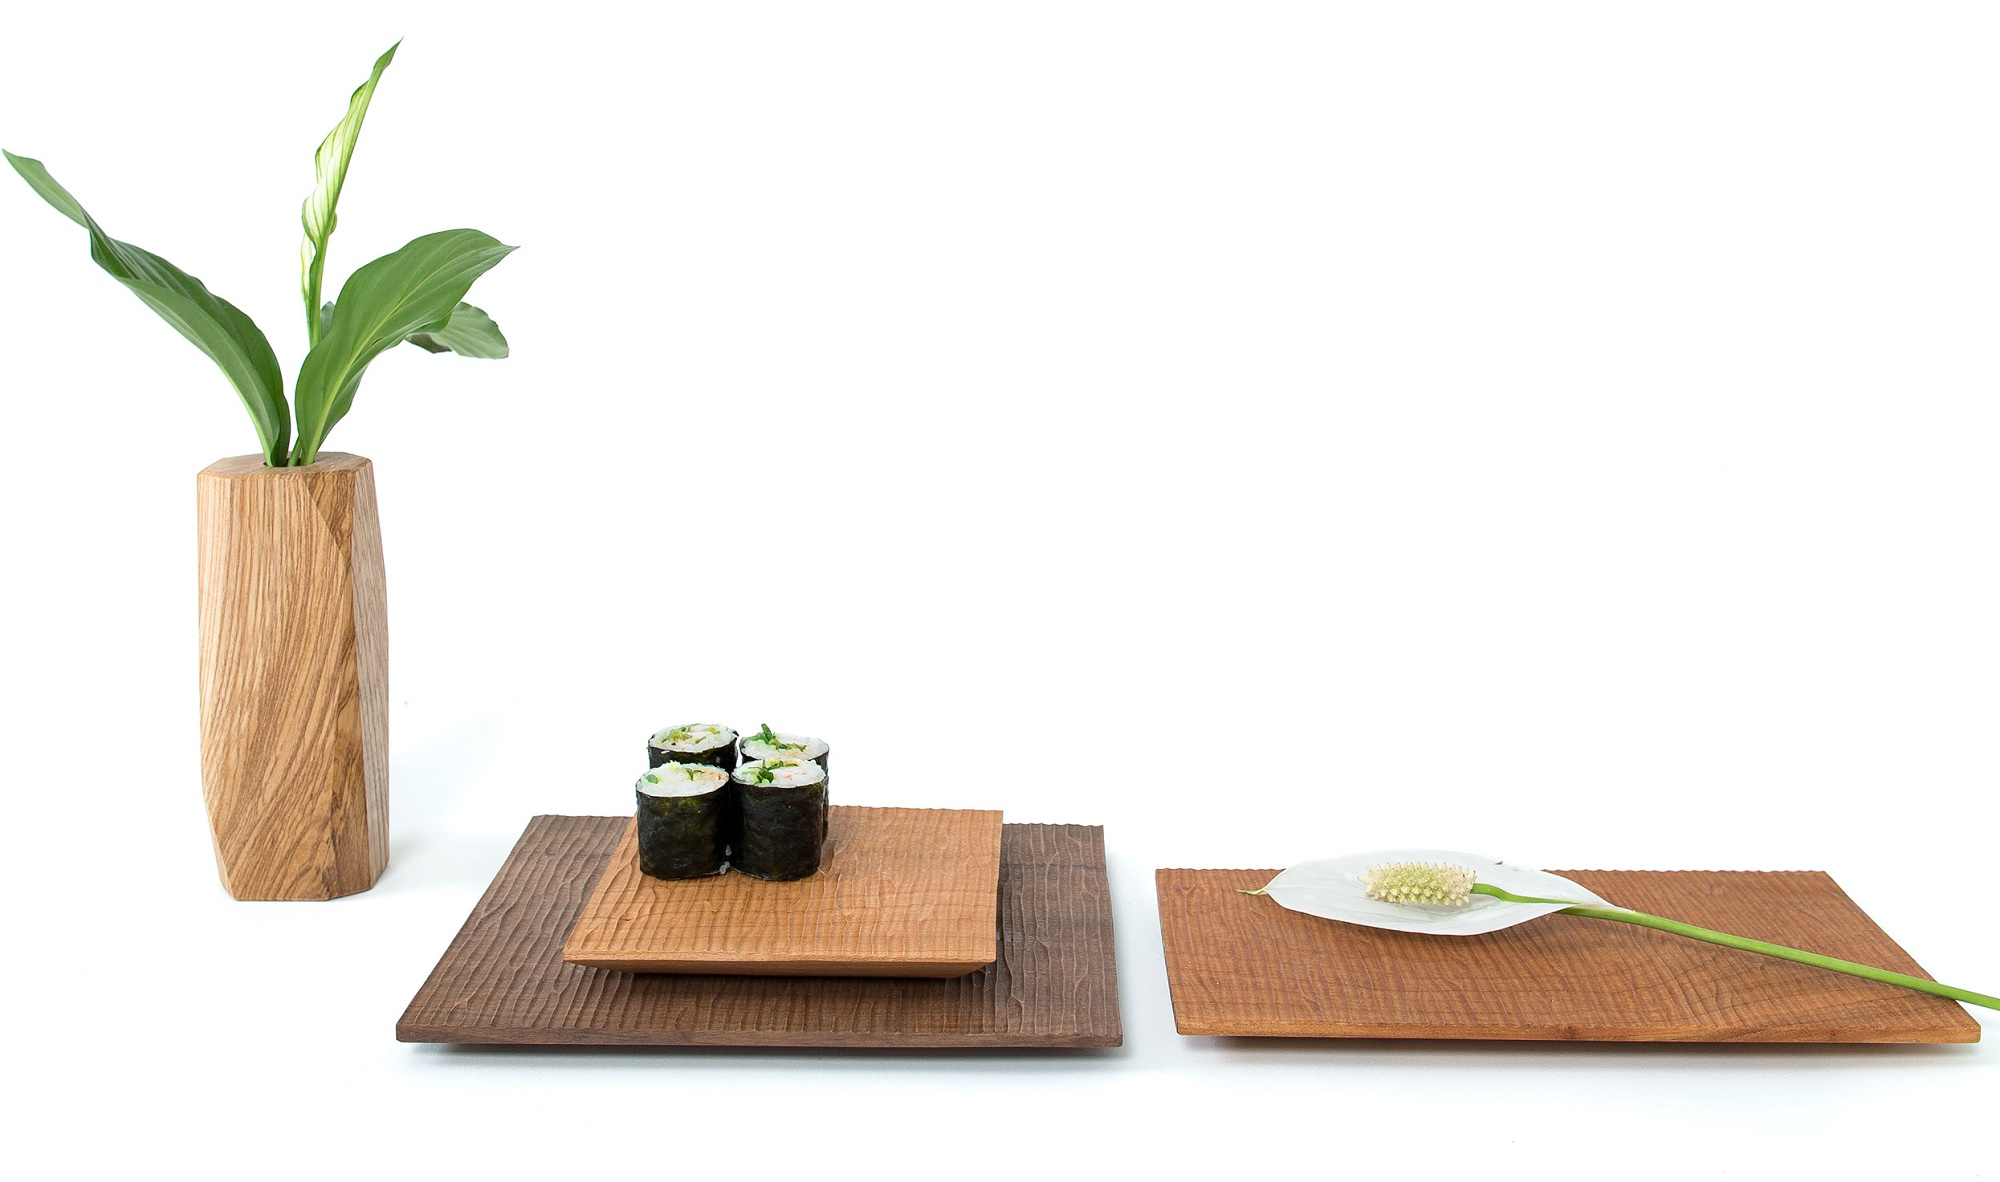 Carved wooden trays and vase. Sushi and flower display. /  Maki-zushi sobre bandeja de madera tallada.